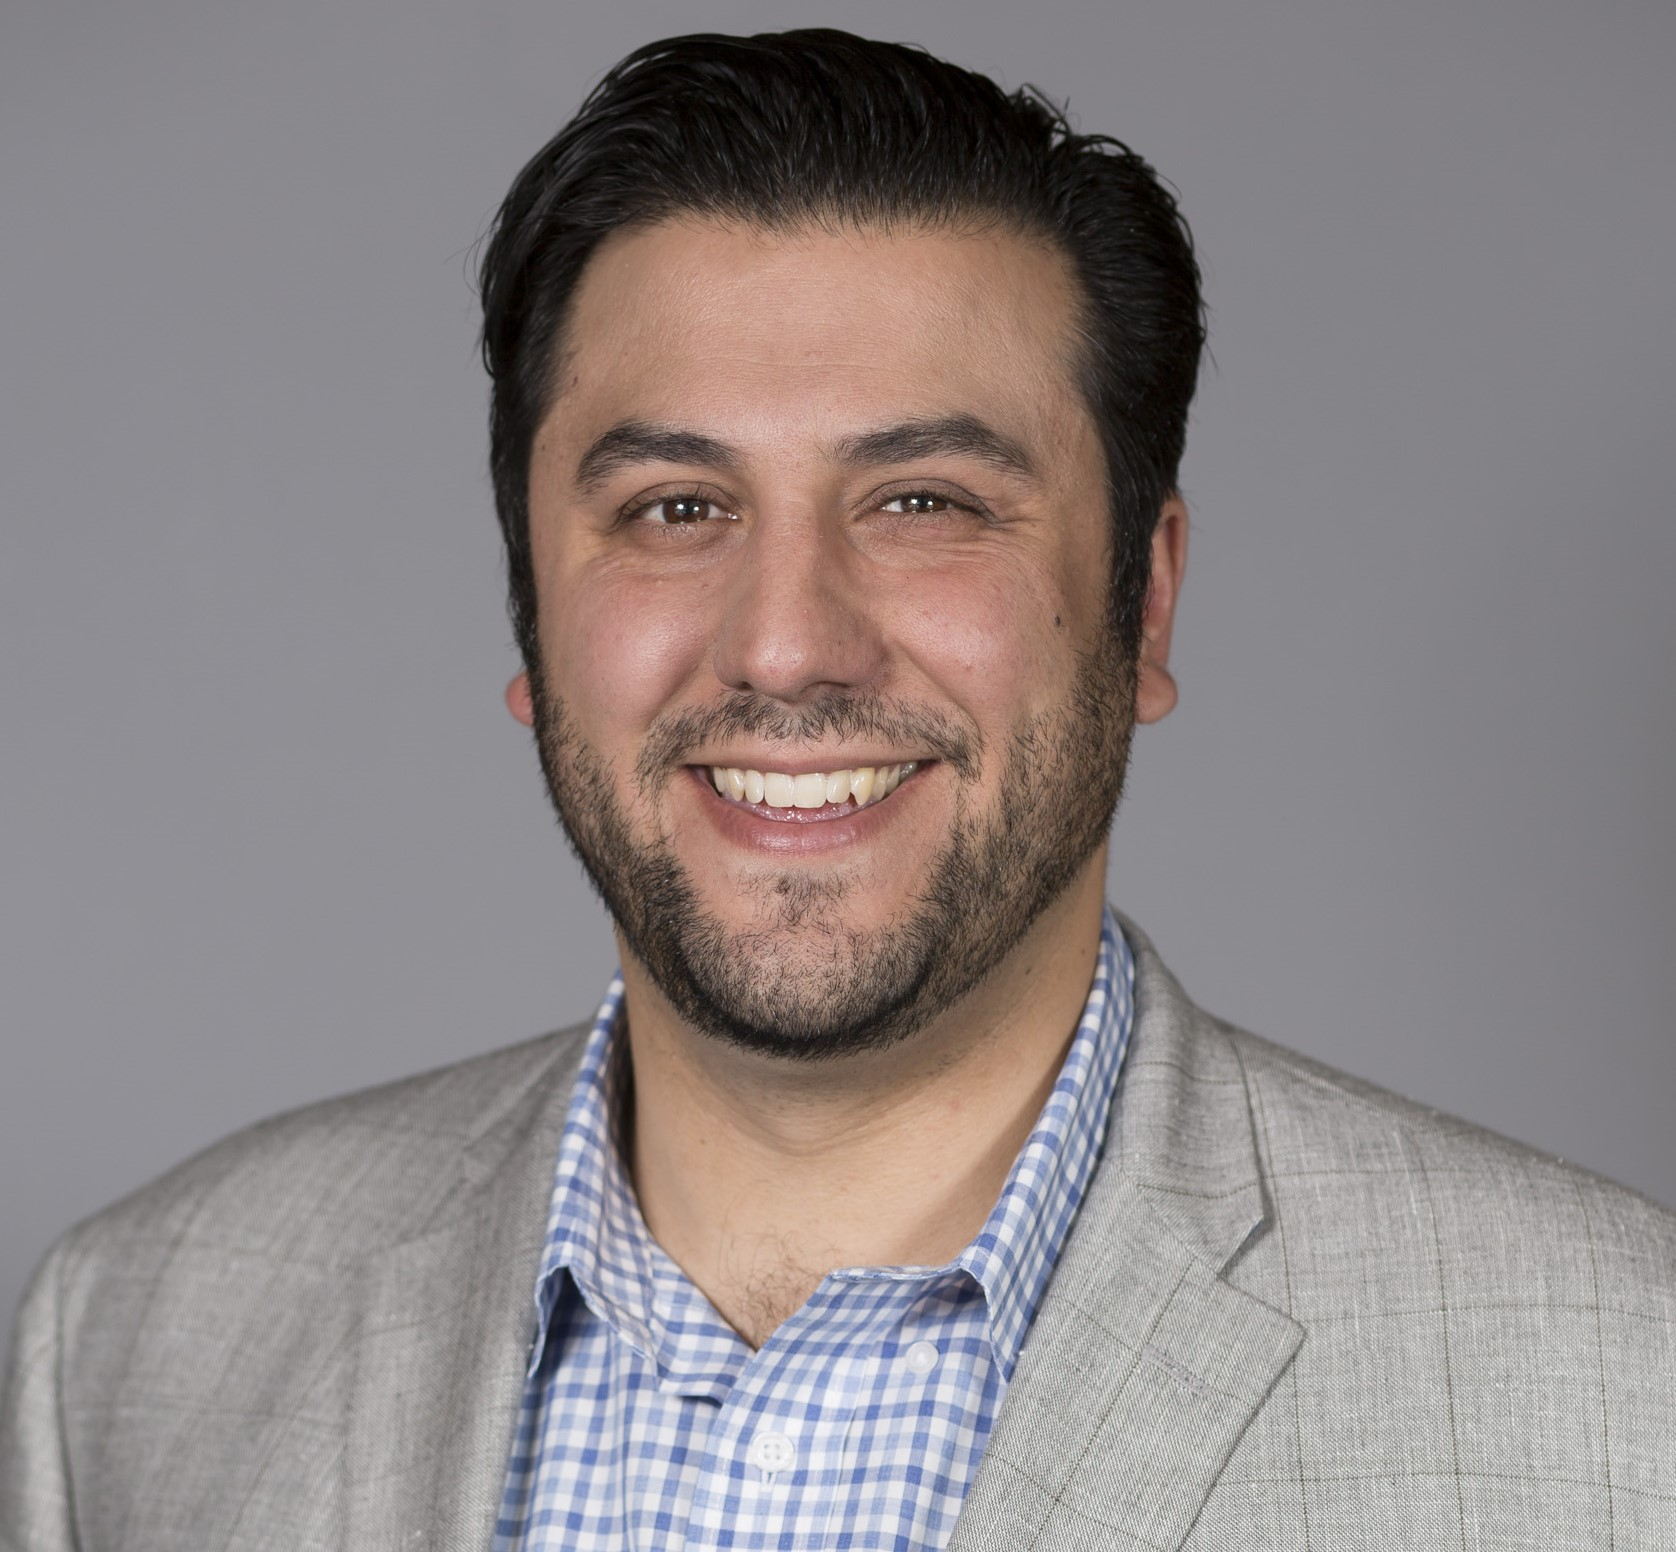 Mike Vella '05, '08G was recognized as an HR Superstar by HRO Today.